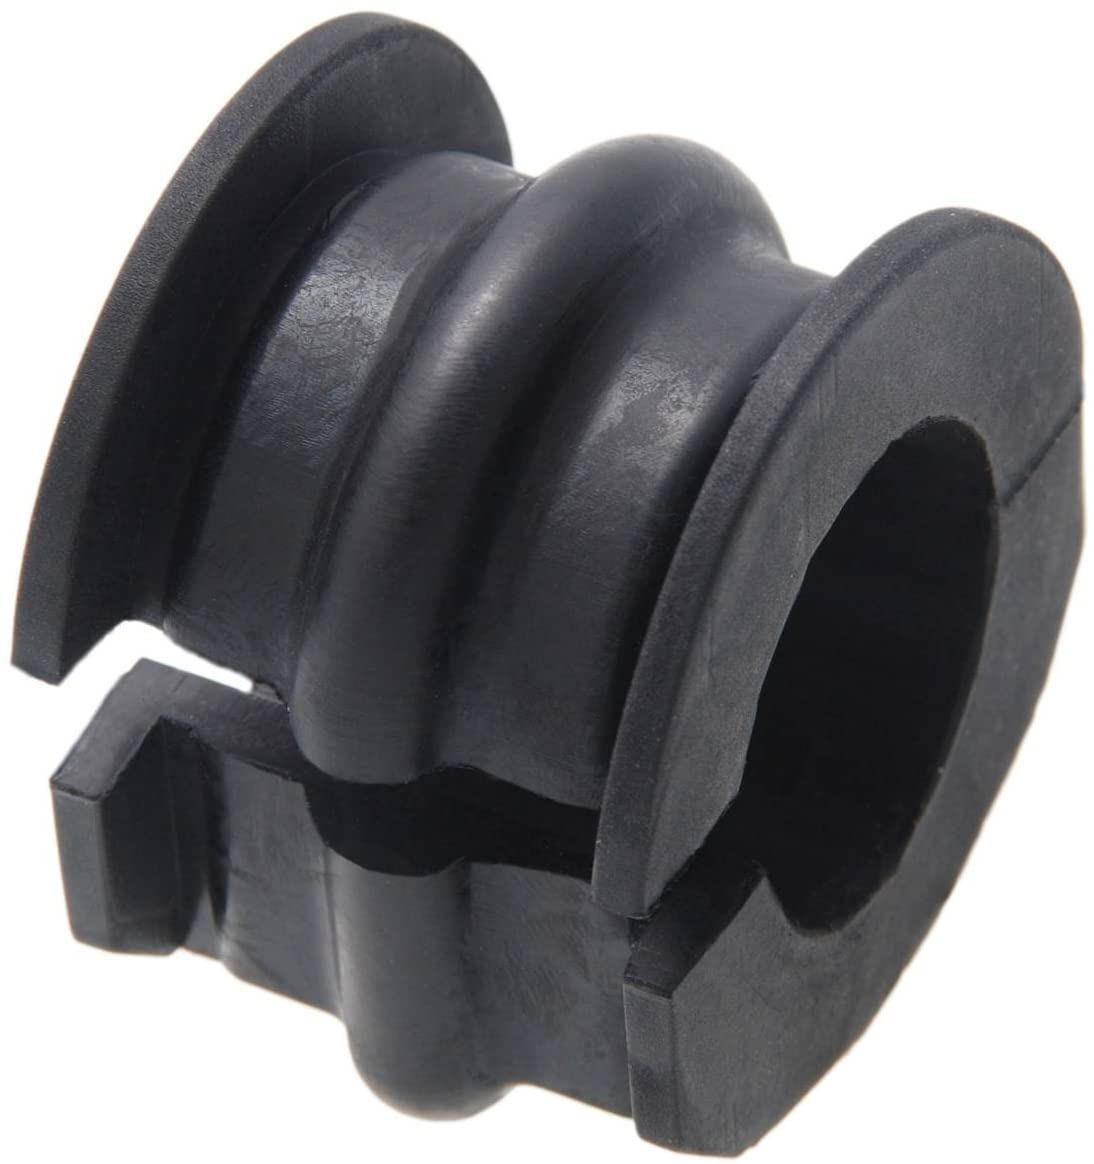 546131Ca1A - Rear Stabilizer Bushing D28 For Nissan